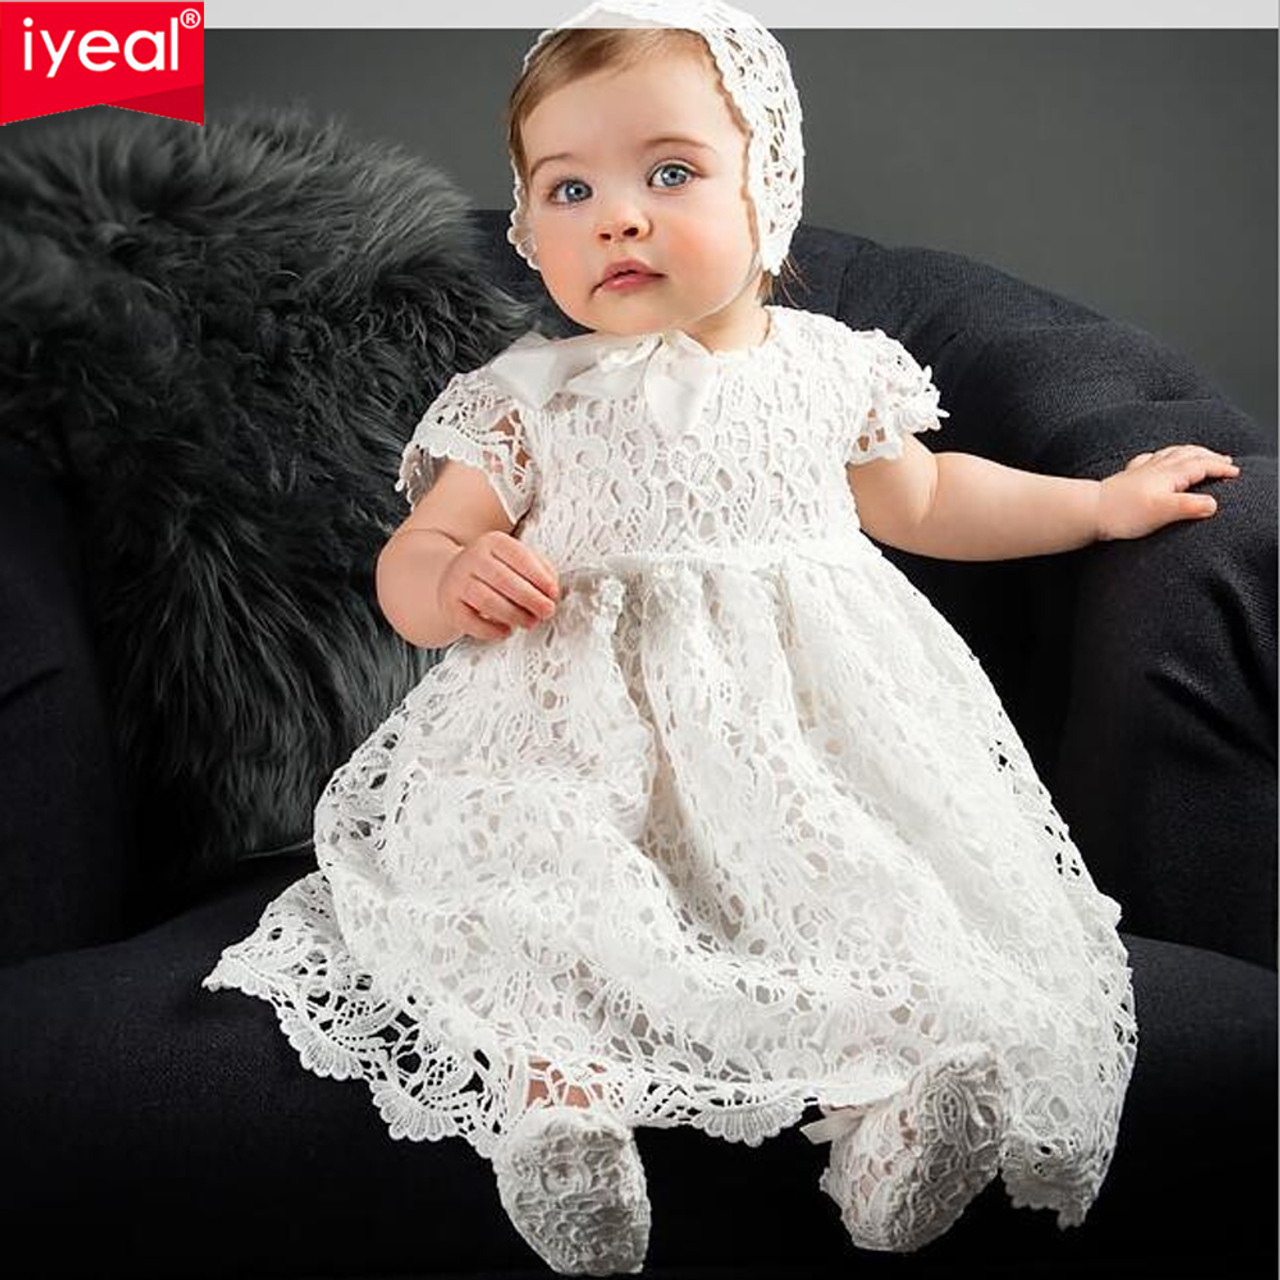 a2868fb44e79d ... IYEAL 2018 New 1 Year Birthday Baby Girl Dresses For Baptism Infant  Princess Lace Christening Gown ...